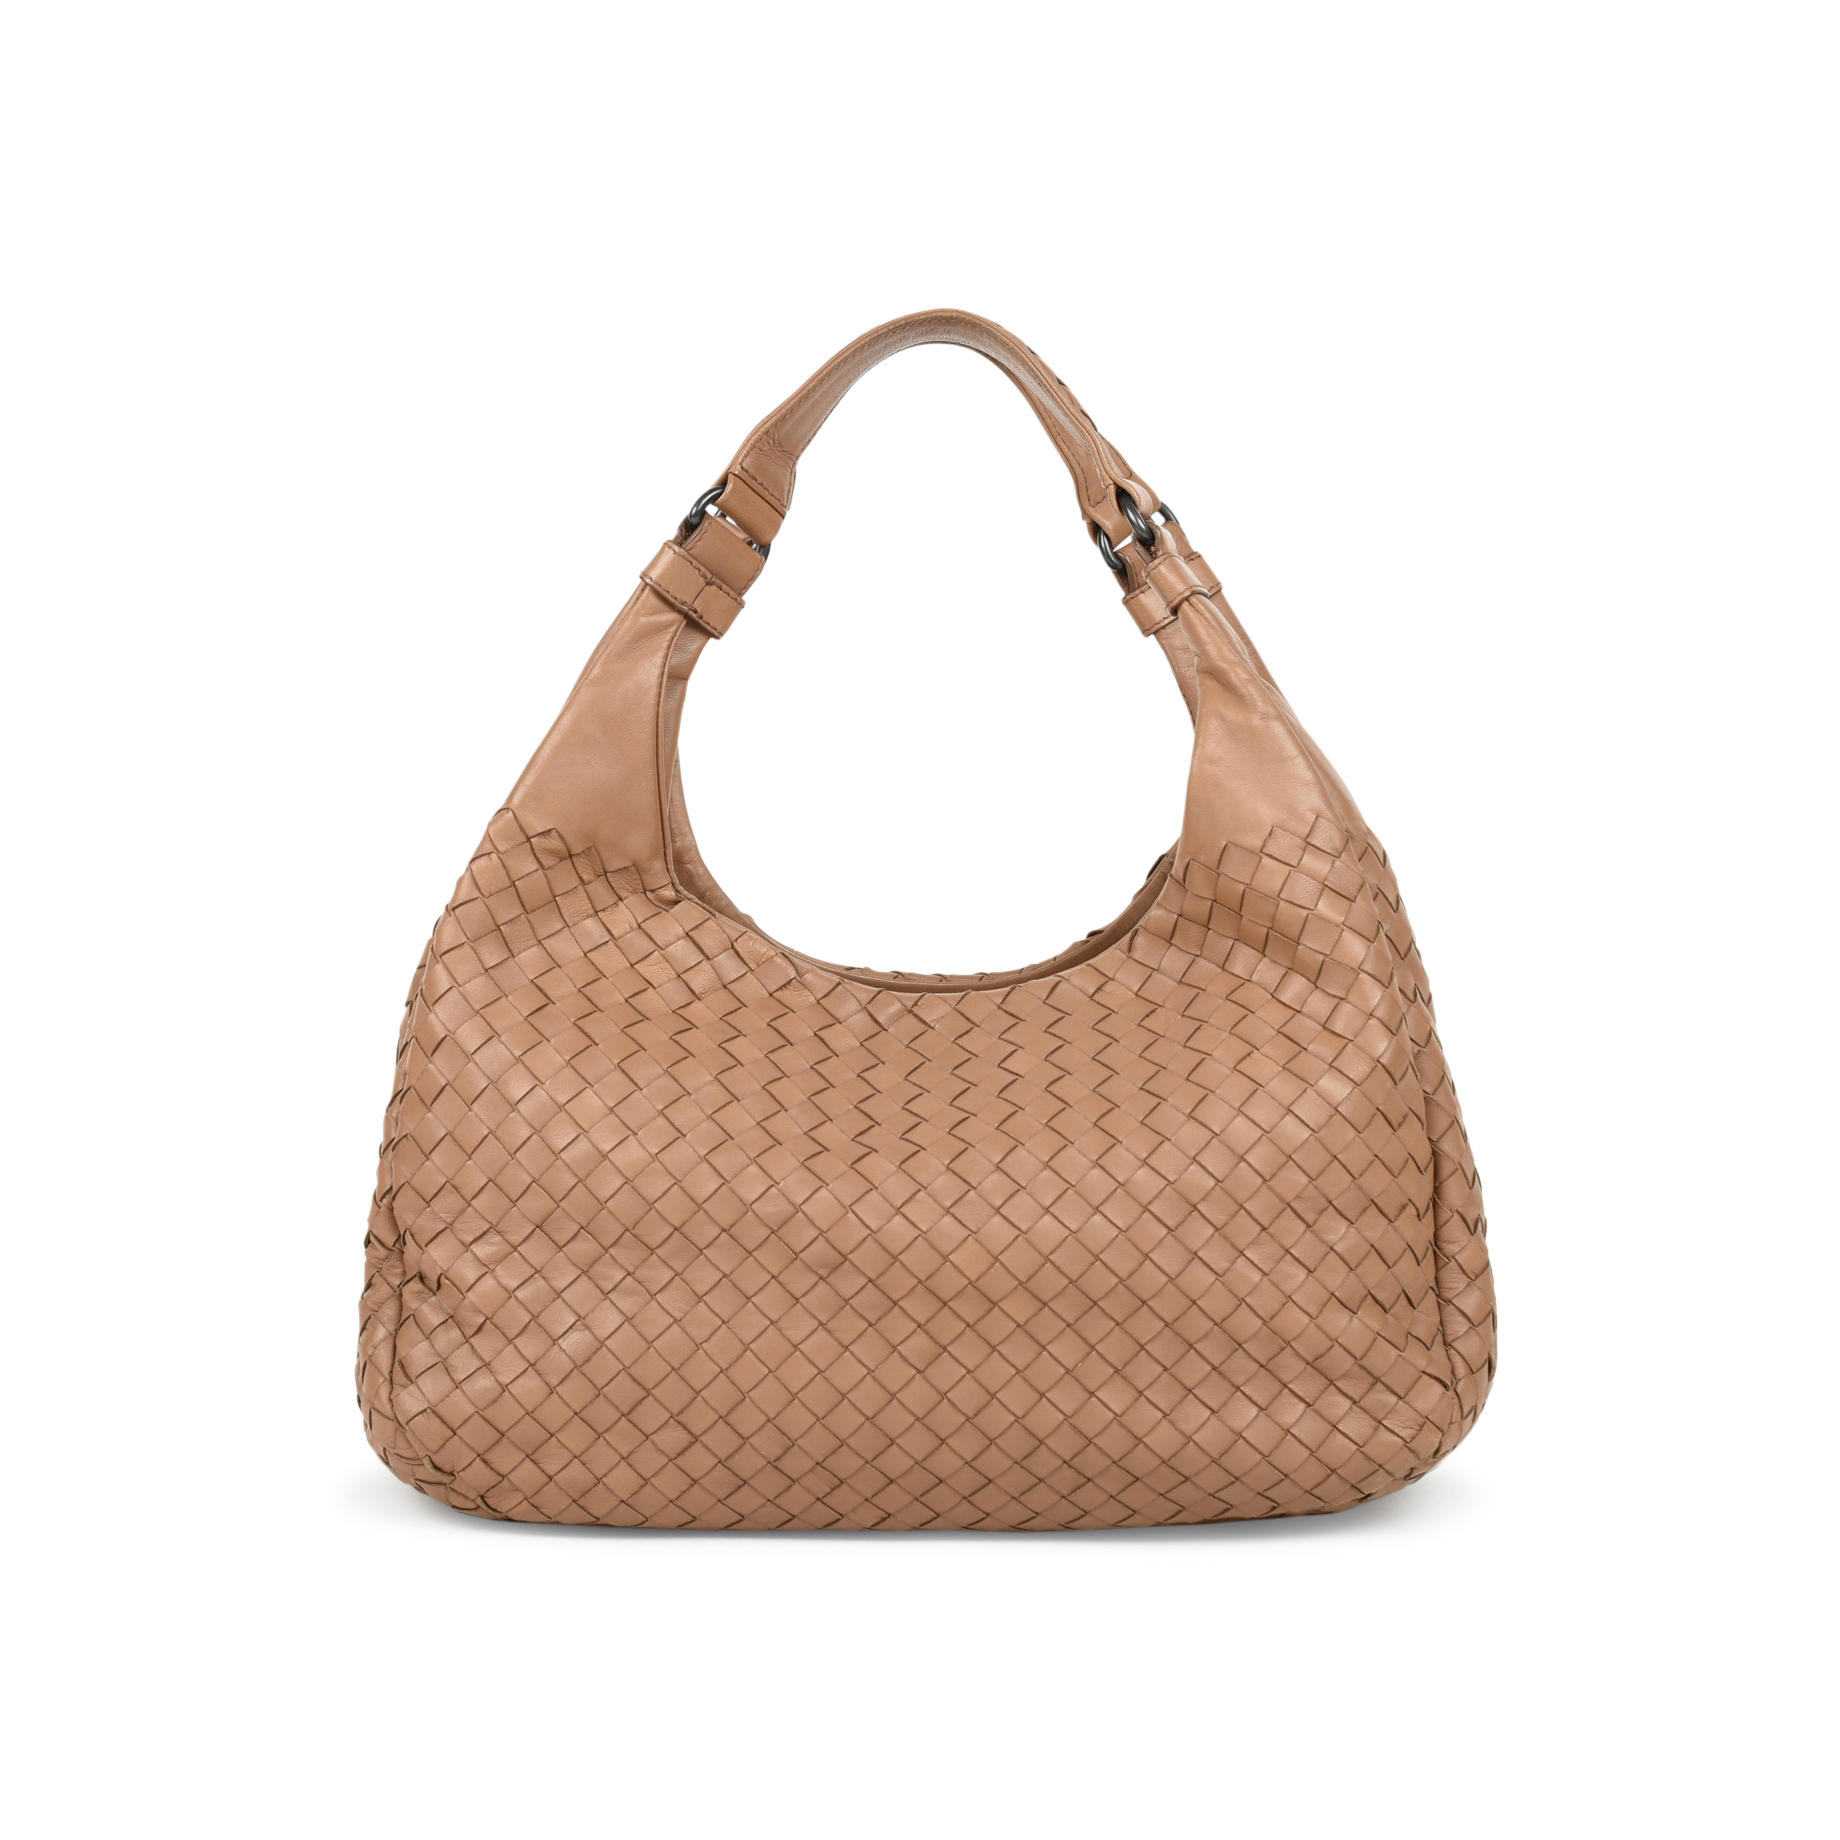 247c574214 Authentic Second Hand Bottega Veneta Intrecciato Campana Shoulder Bag  (PSS-472-00007)